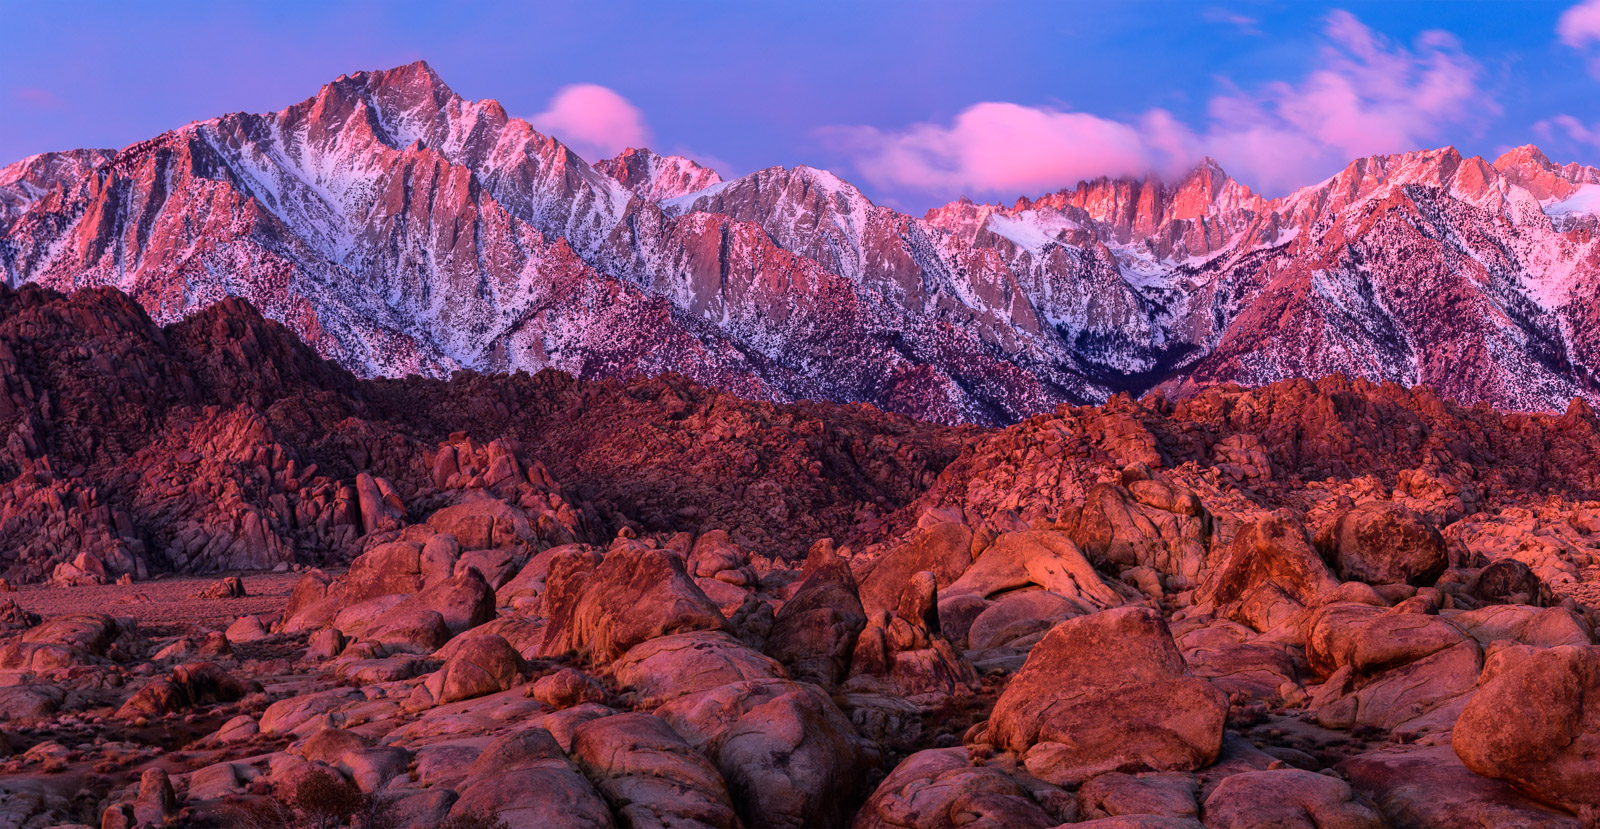 Limited Edition of 50 As viewed from the Alabama Hills, Mount Whitney and the jagged peaks of the Eastern Sierra rise above the...